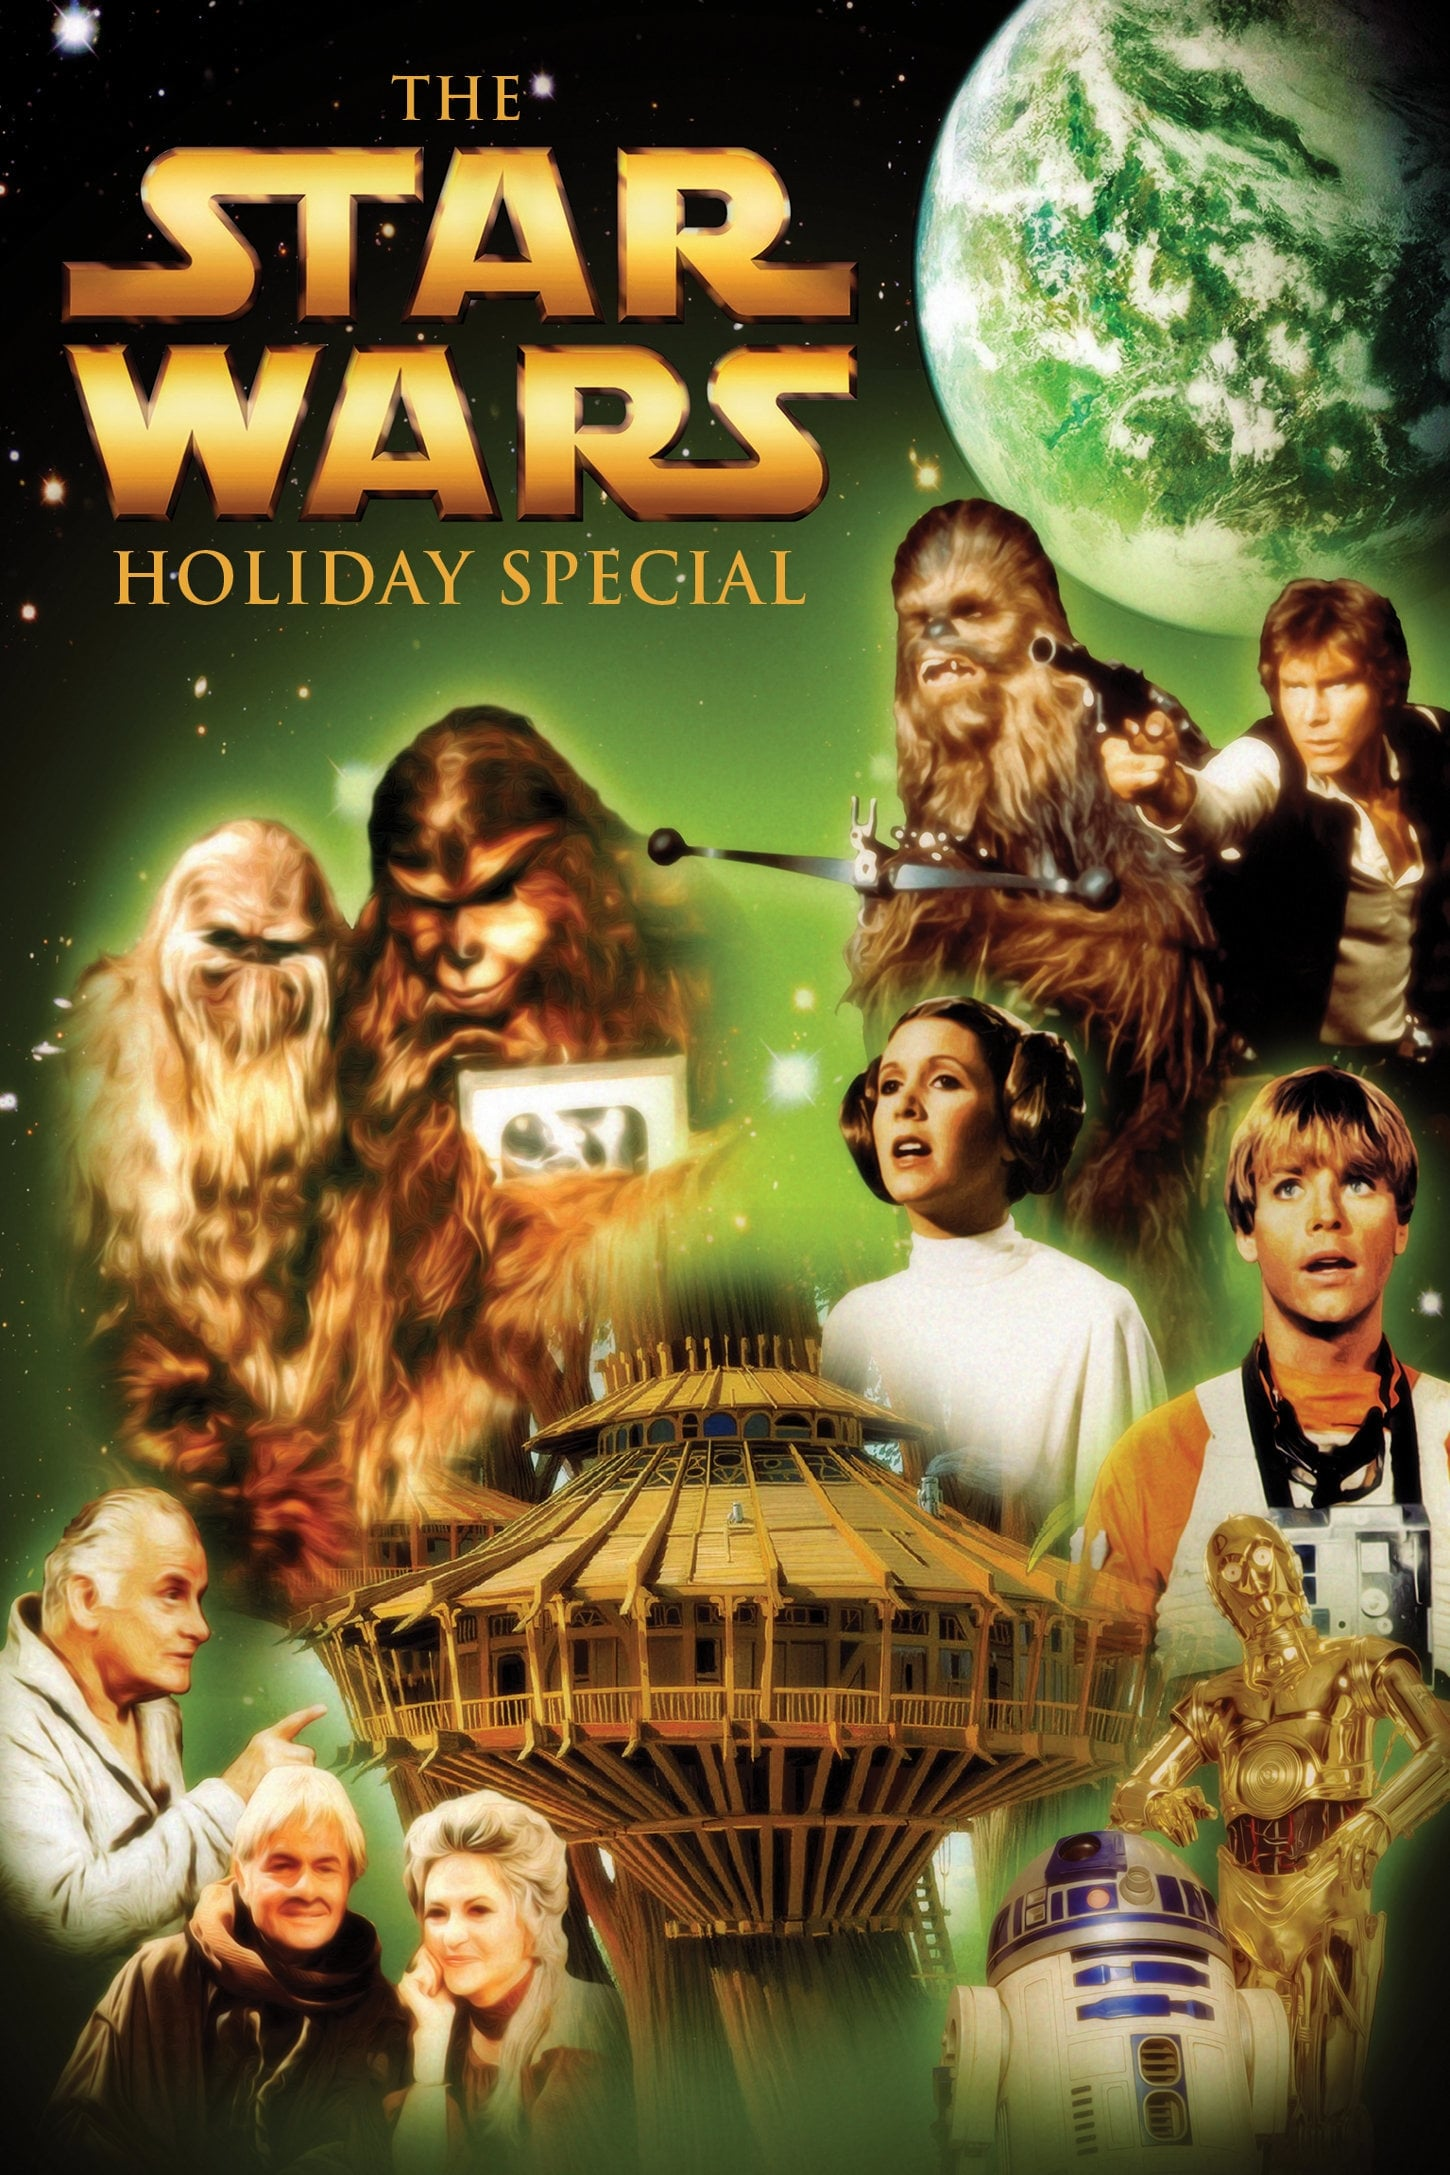 The Star Wars Holiday Special poster on TMDB - I chose this particular one because it features Bea Arthur as well as the treehouse